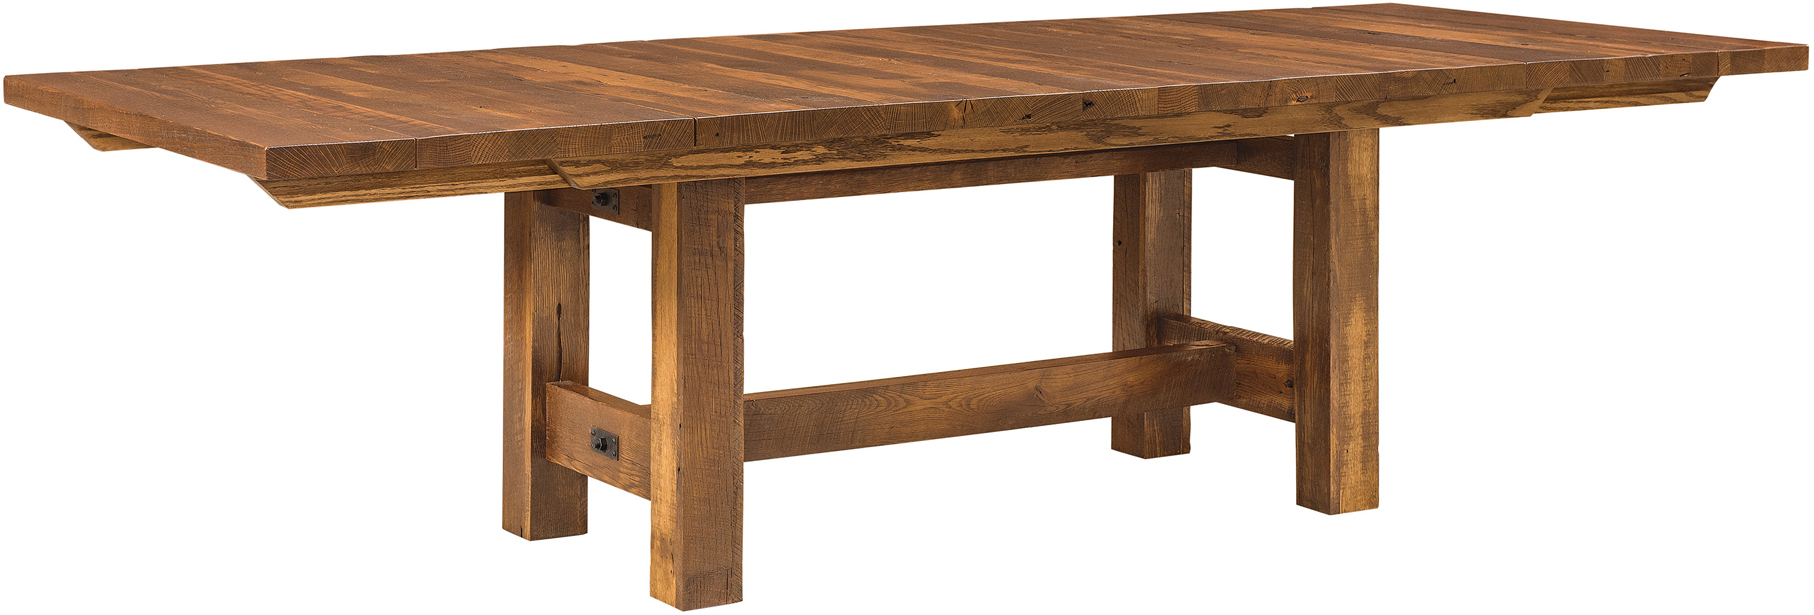 Lynchburg Trestle Dining Table | Amish Lynchburg Table Regarding Best And Newest Kara Trestle Dining Tables (View 2 of 15)